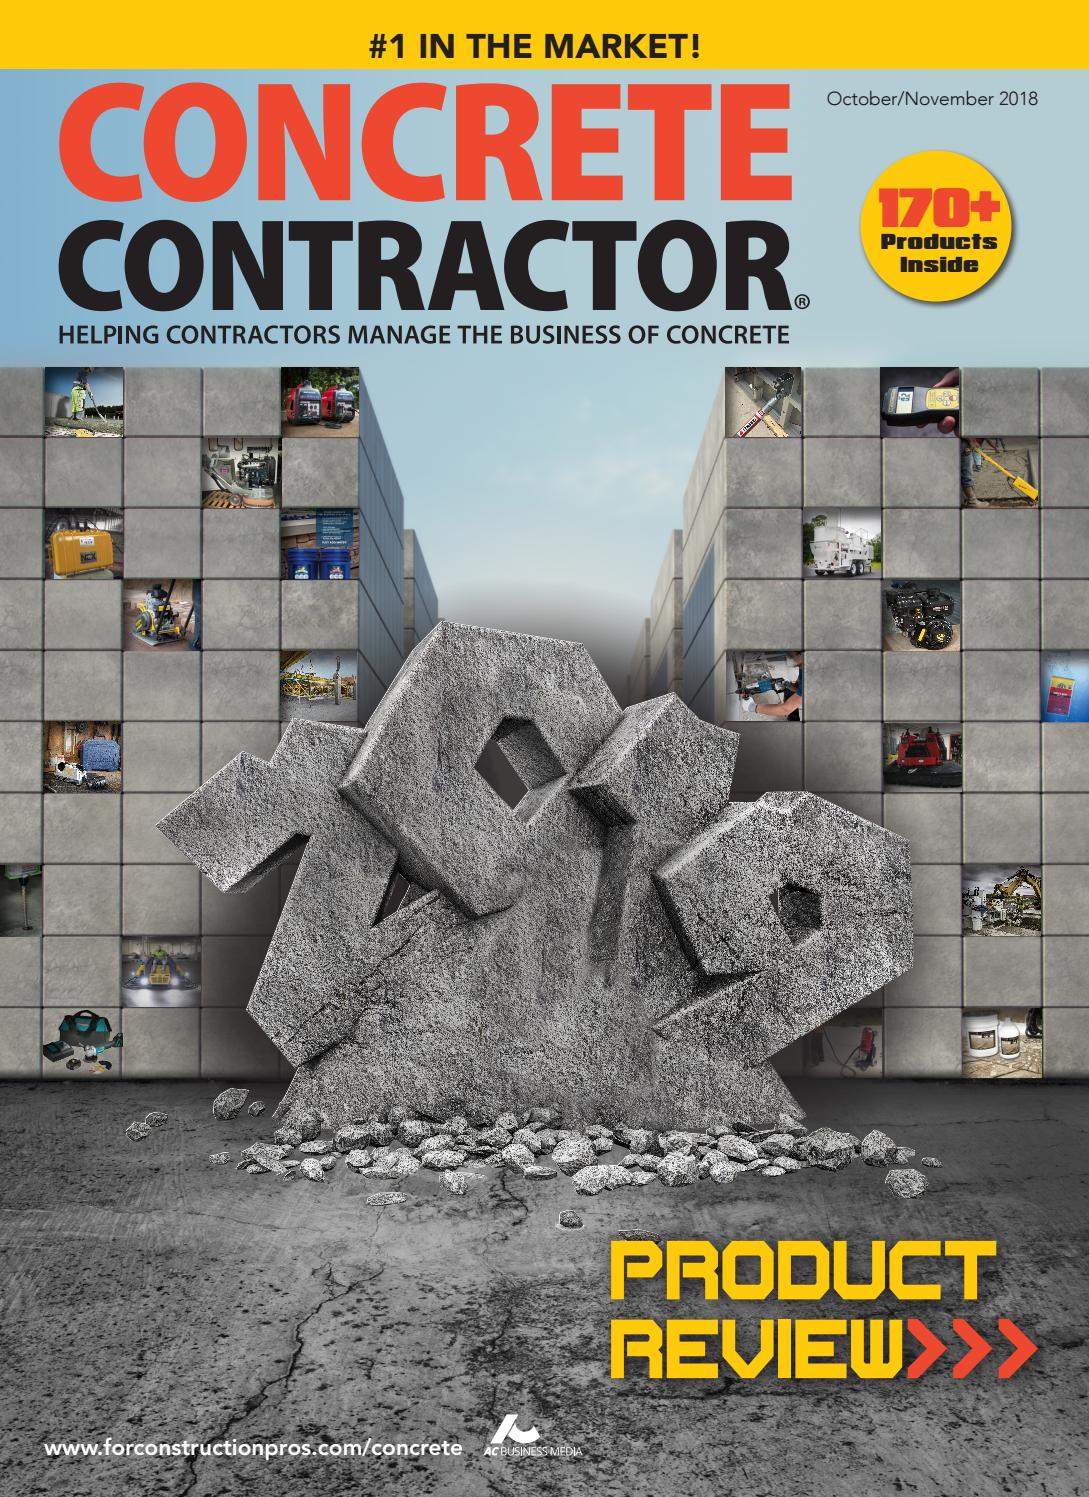 Concrete contractor october november 2018 by forconstructionpros com issuu